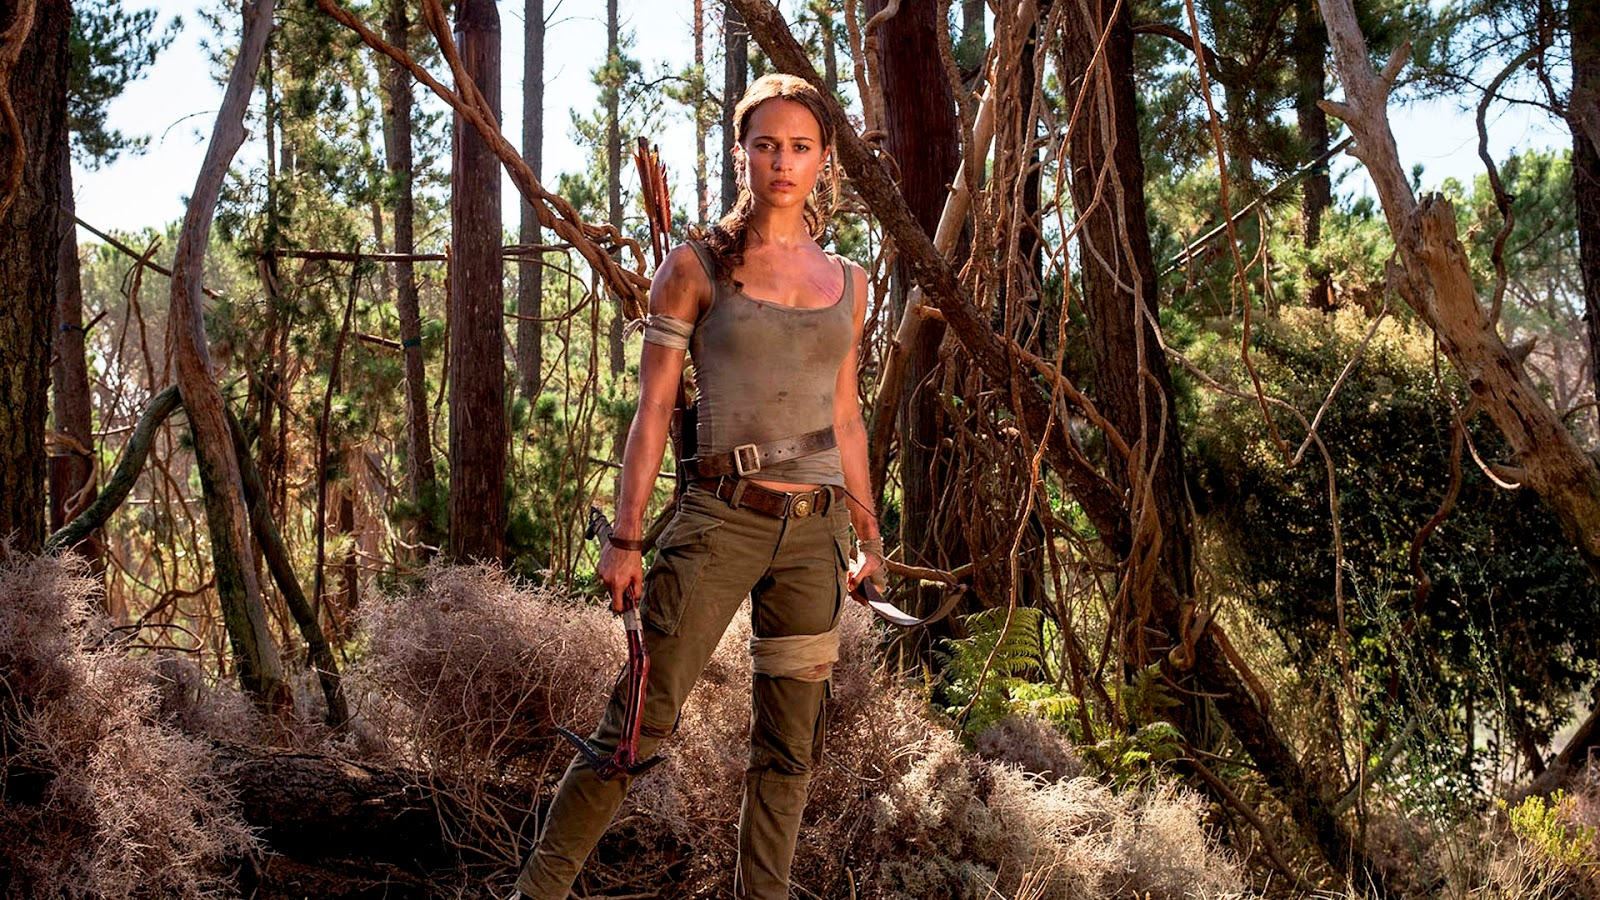 Tomb Raider Director Roar Uthaug On Why Lara Croft Is A Hero For